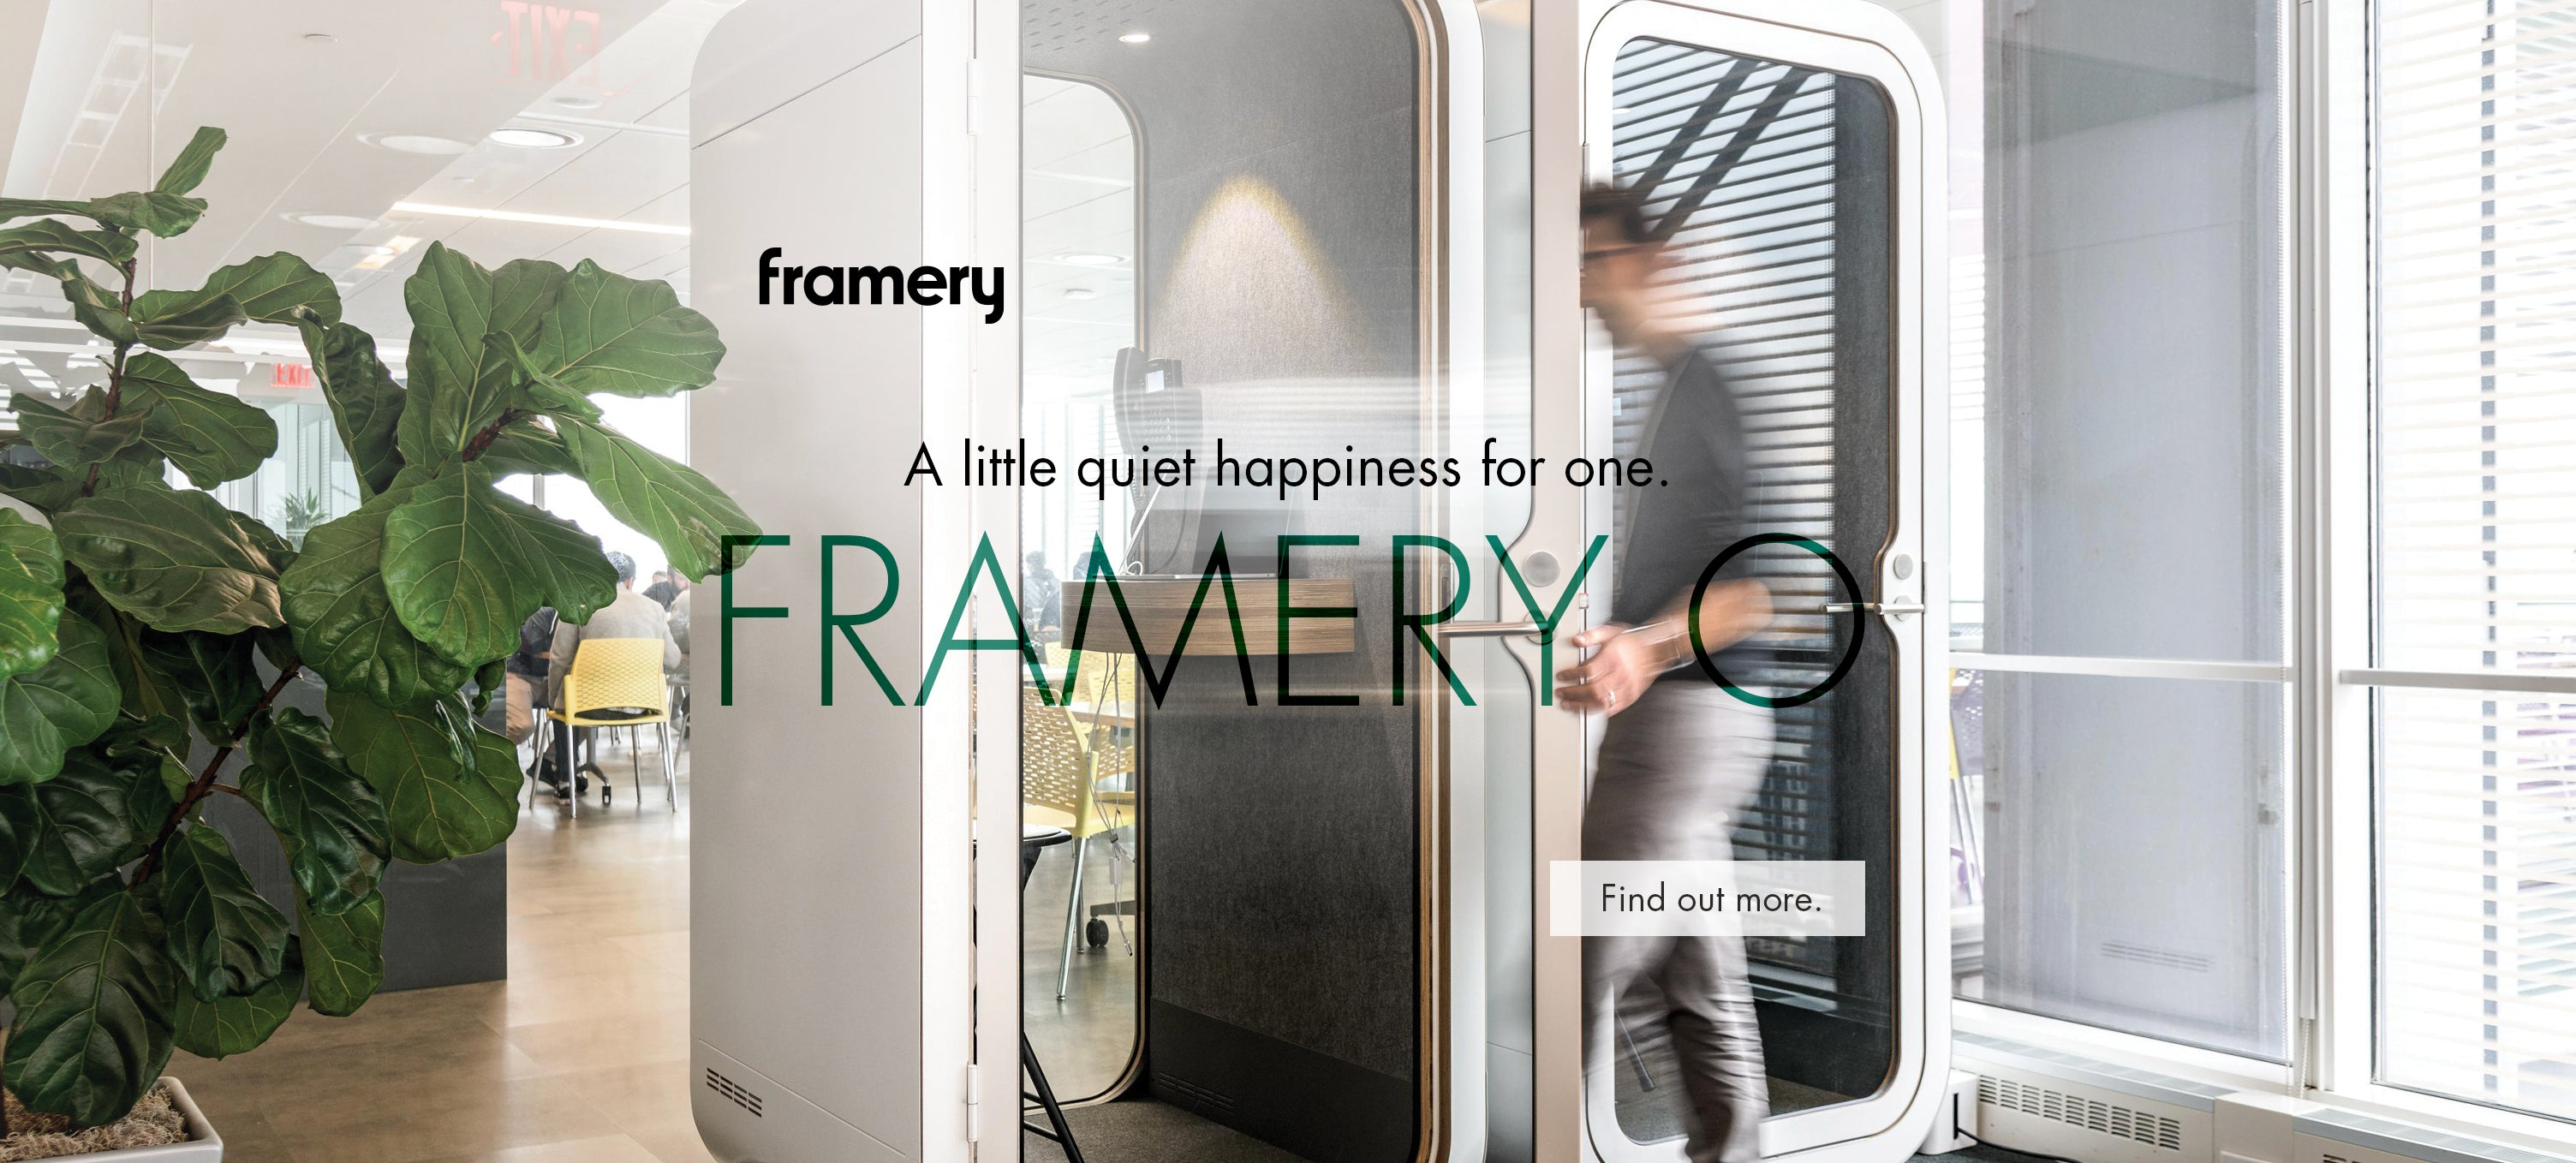 Framery O acoustic phone booth